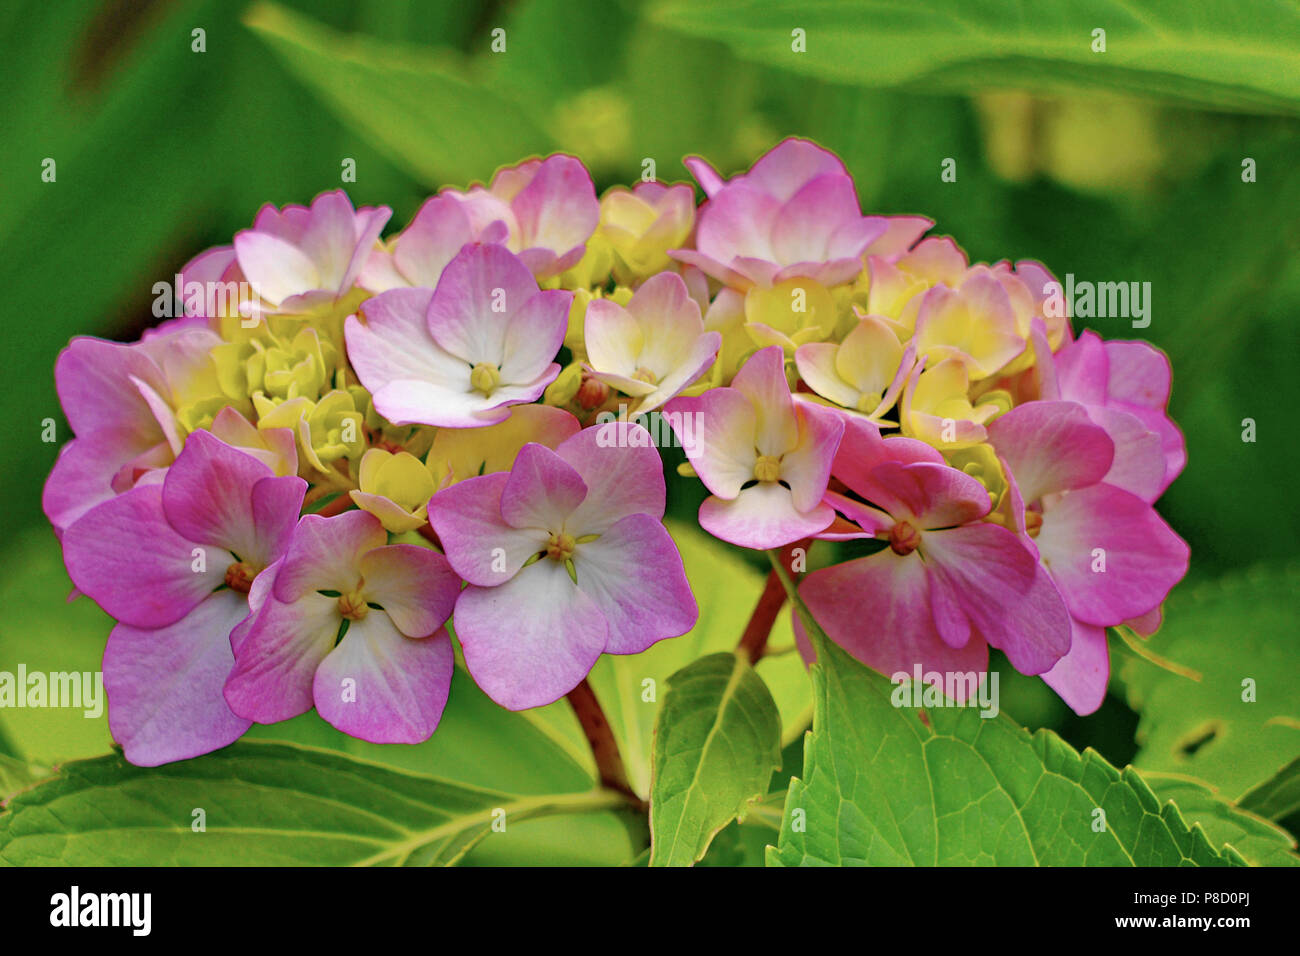 Beautiful Small Petals Of Pink Flowers With Yellow Center And Green